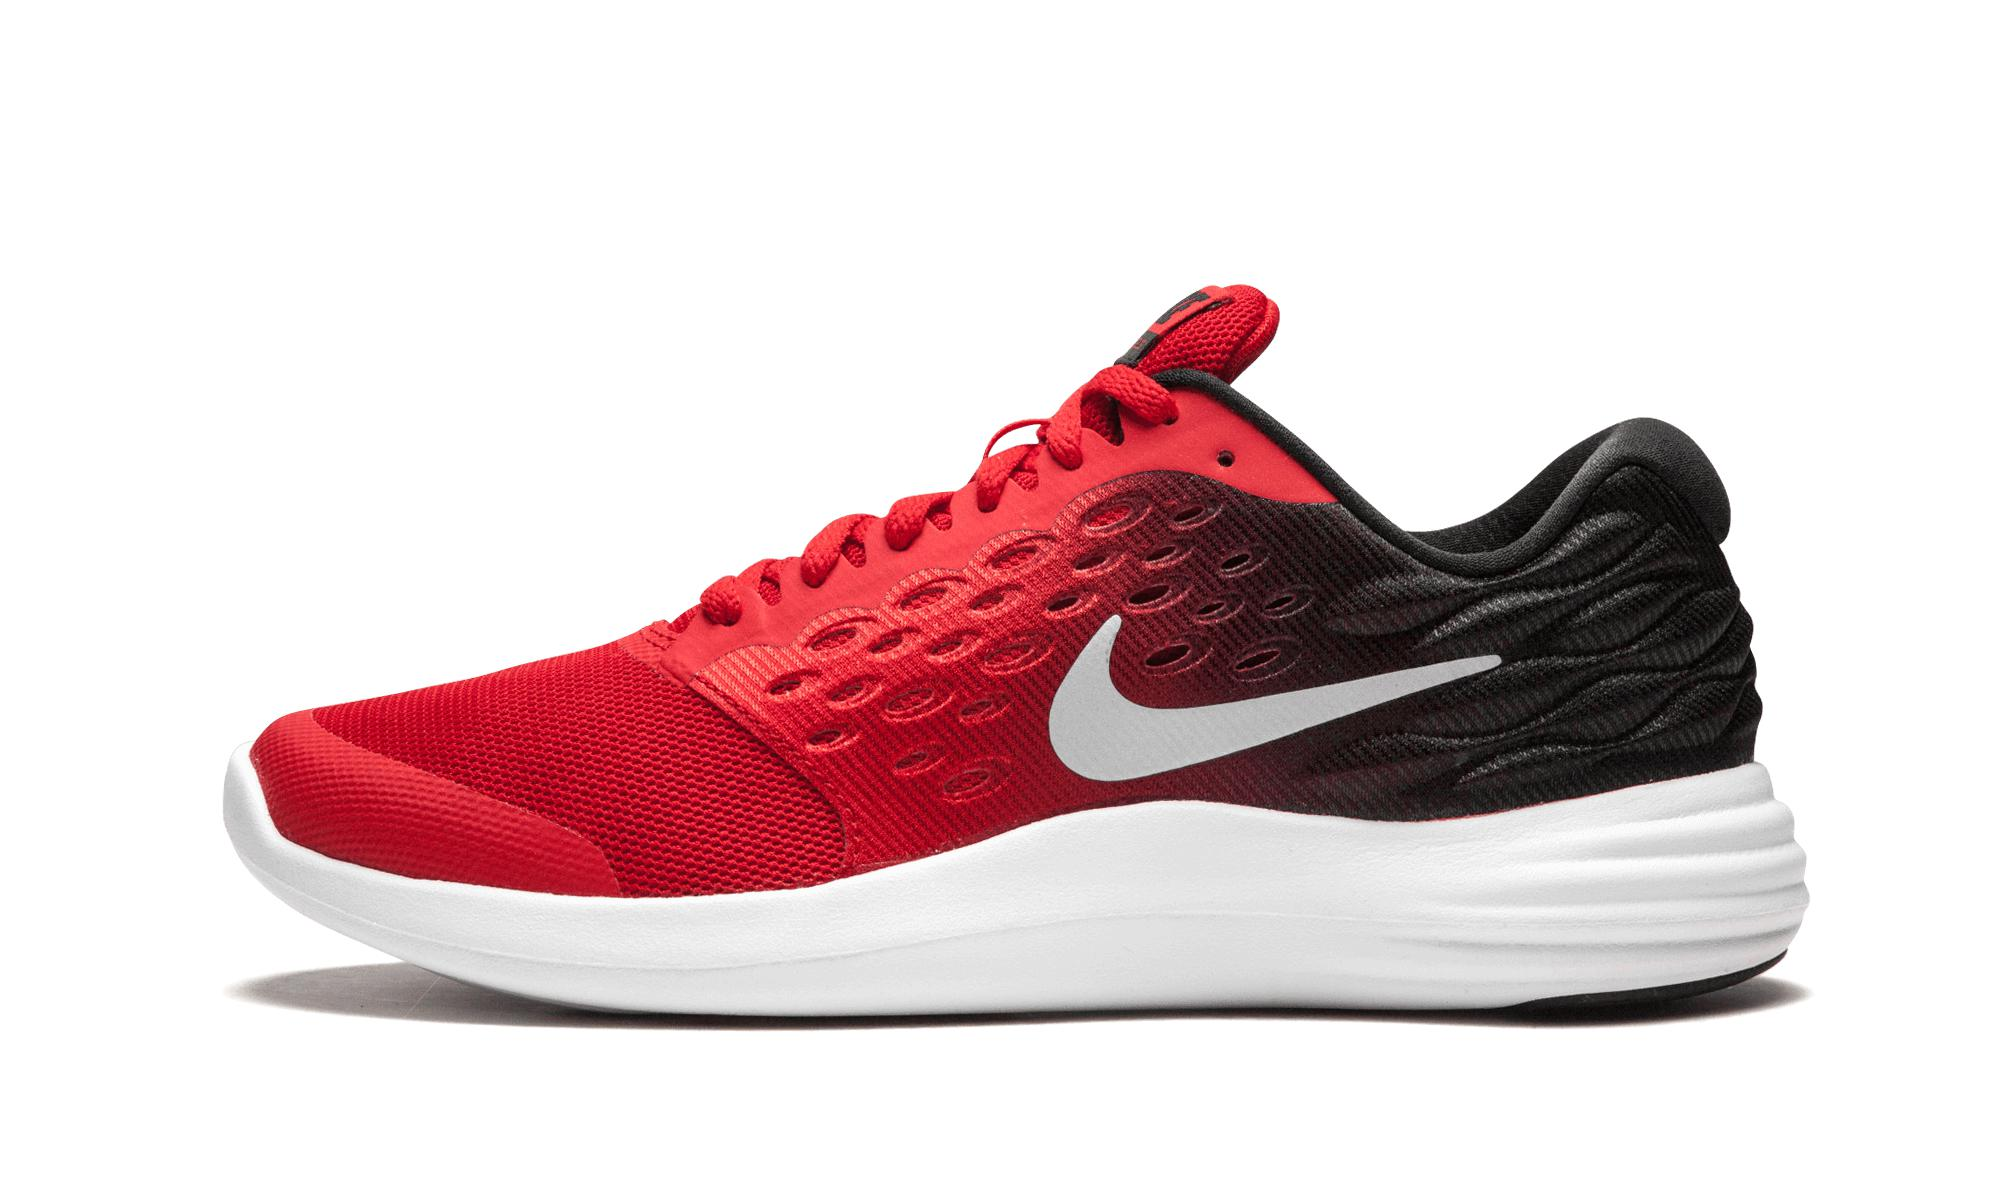 cheap for discount 6e382 3b530 Nike. Women s Red Lunarstelos